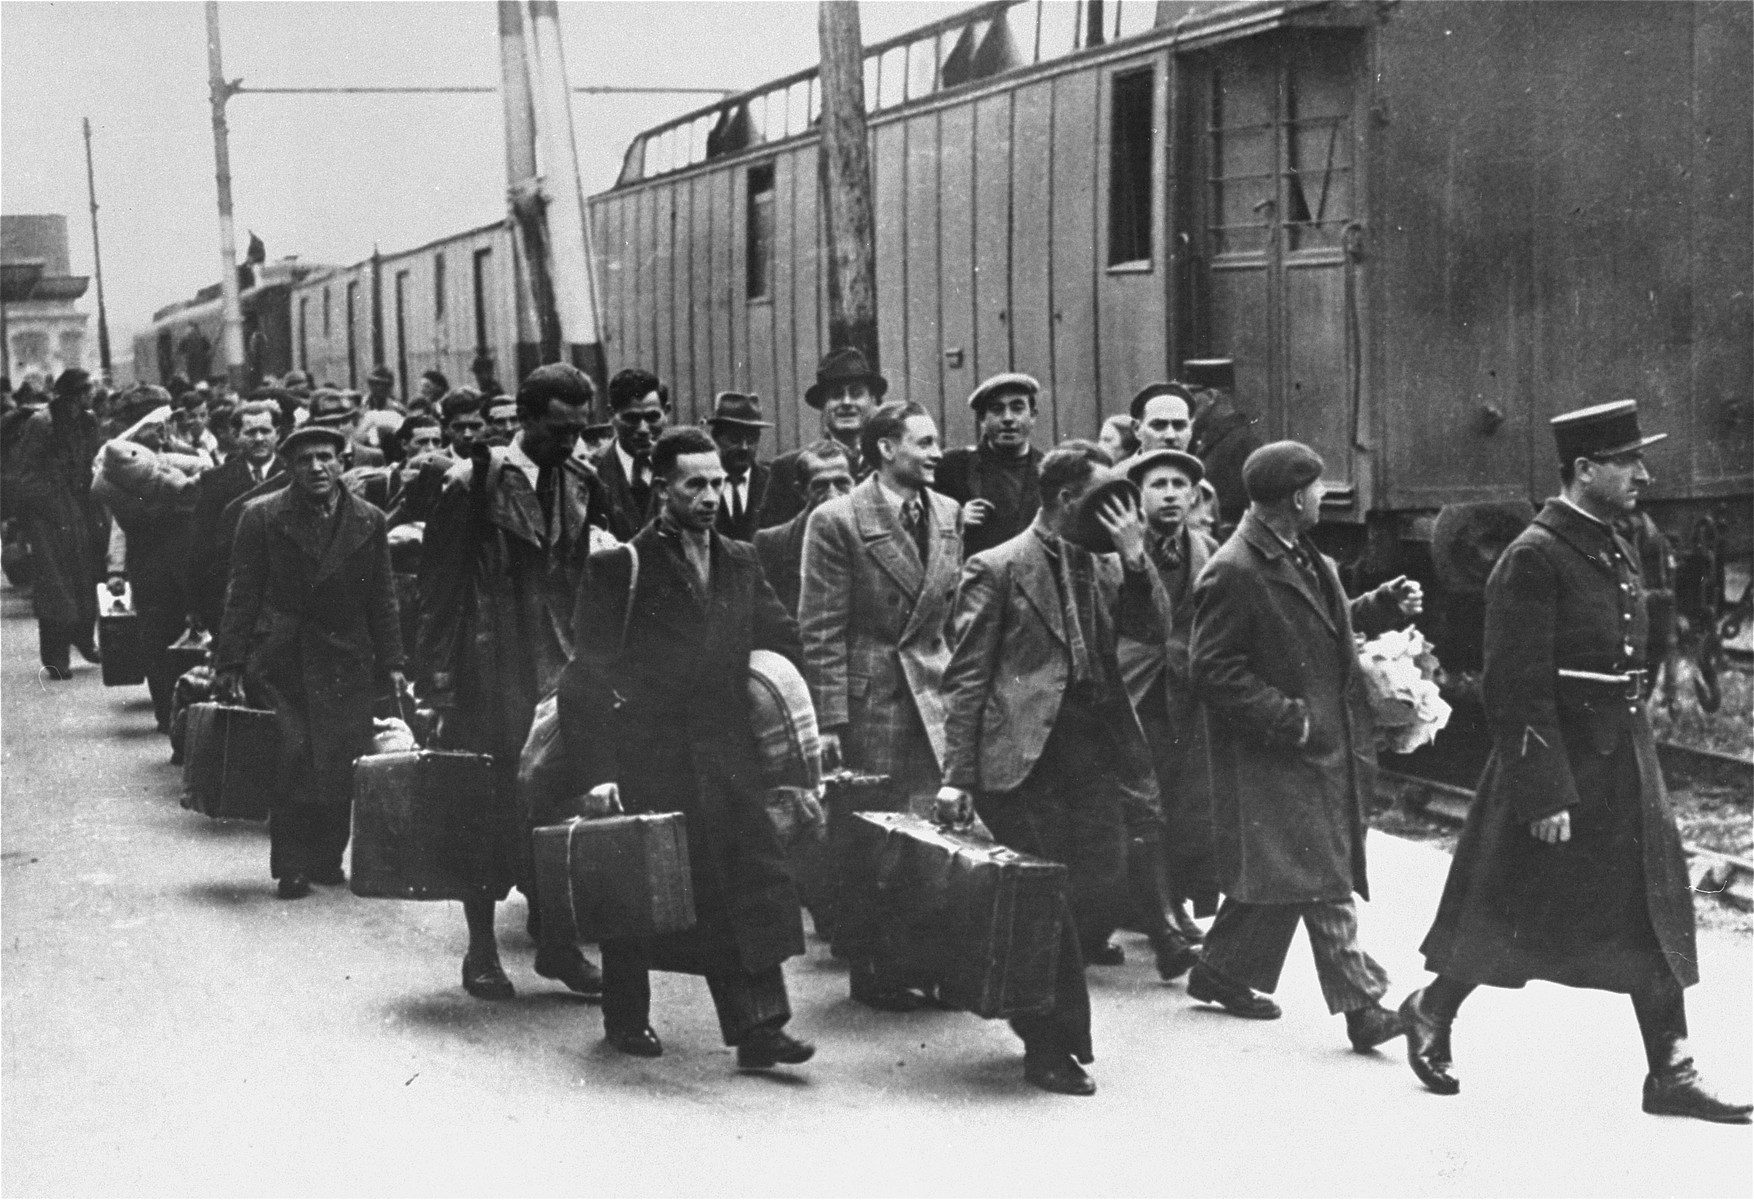 Foreign born Jews arrive at the gare d'Austerlitz station during a deportation action from Paris.